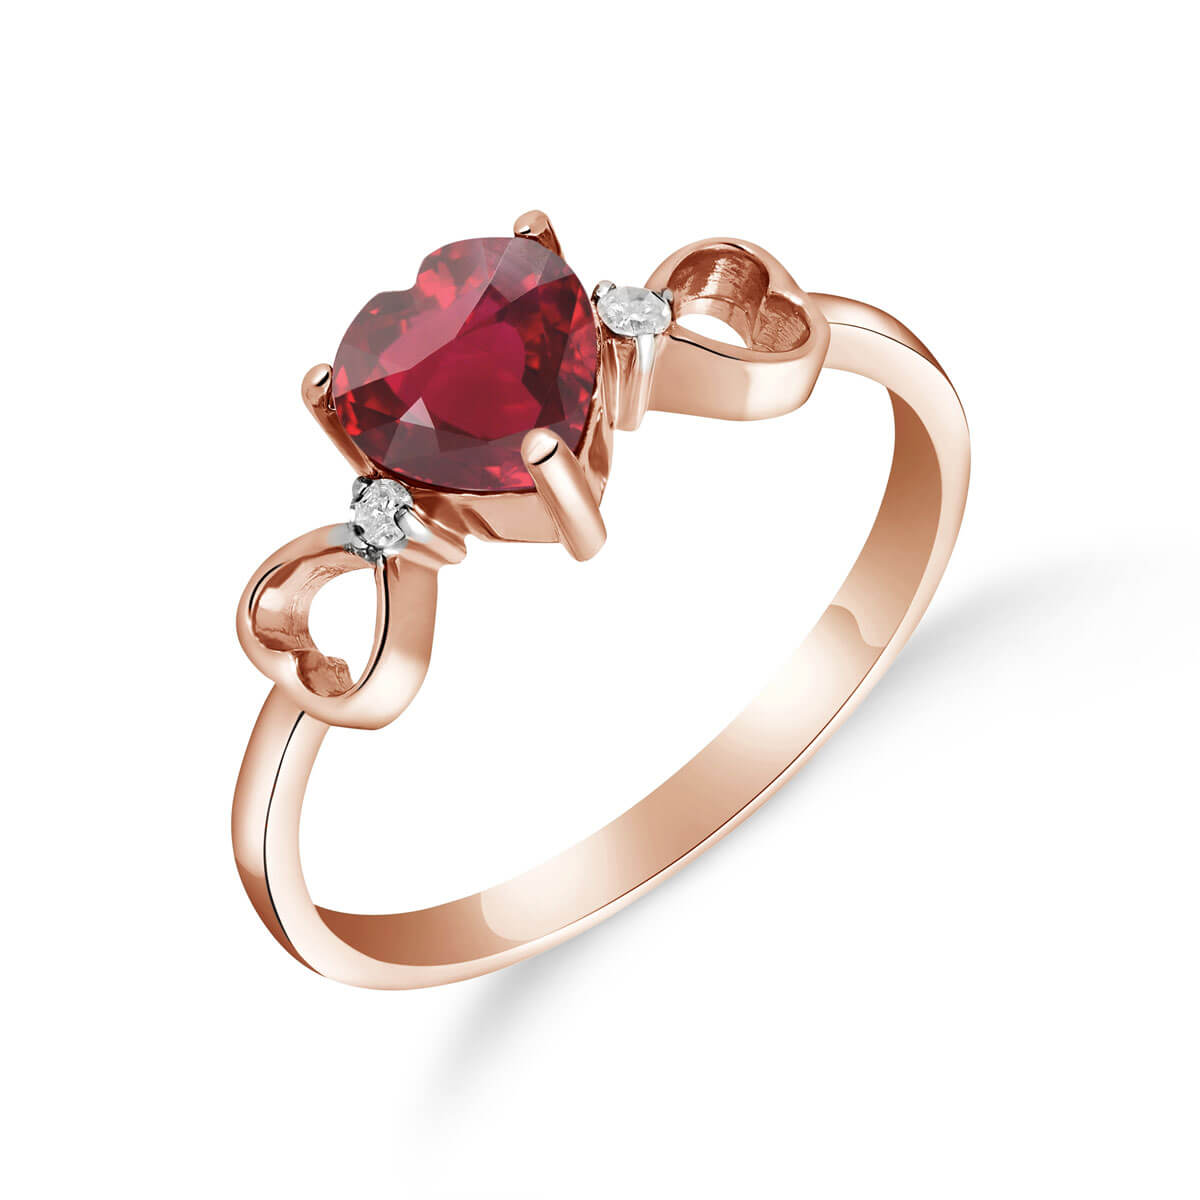 Ruby & Diamond Trinity Ring in 9ct Rose Gold